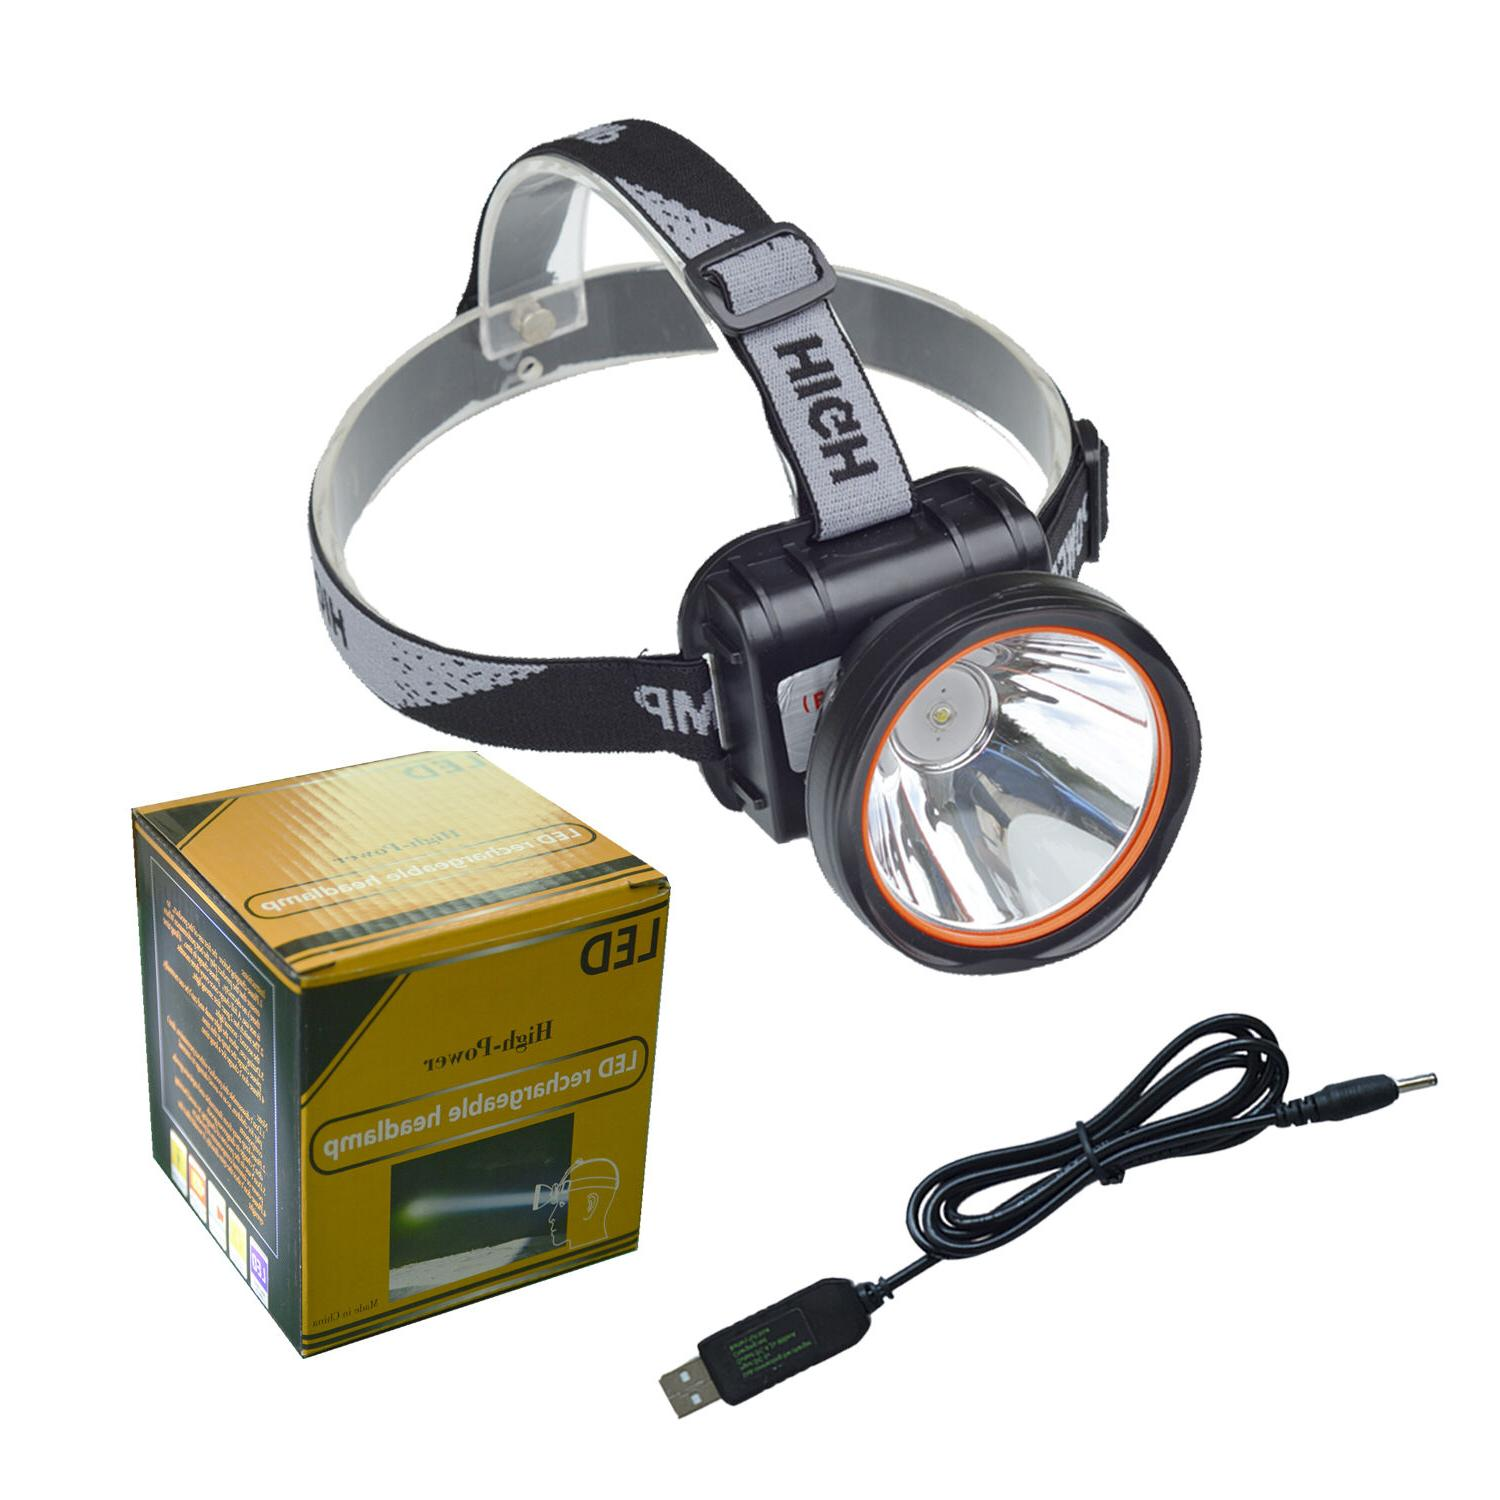 Odear Headlamp Flashlight fishing